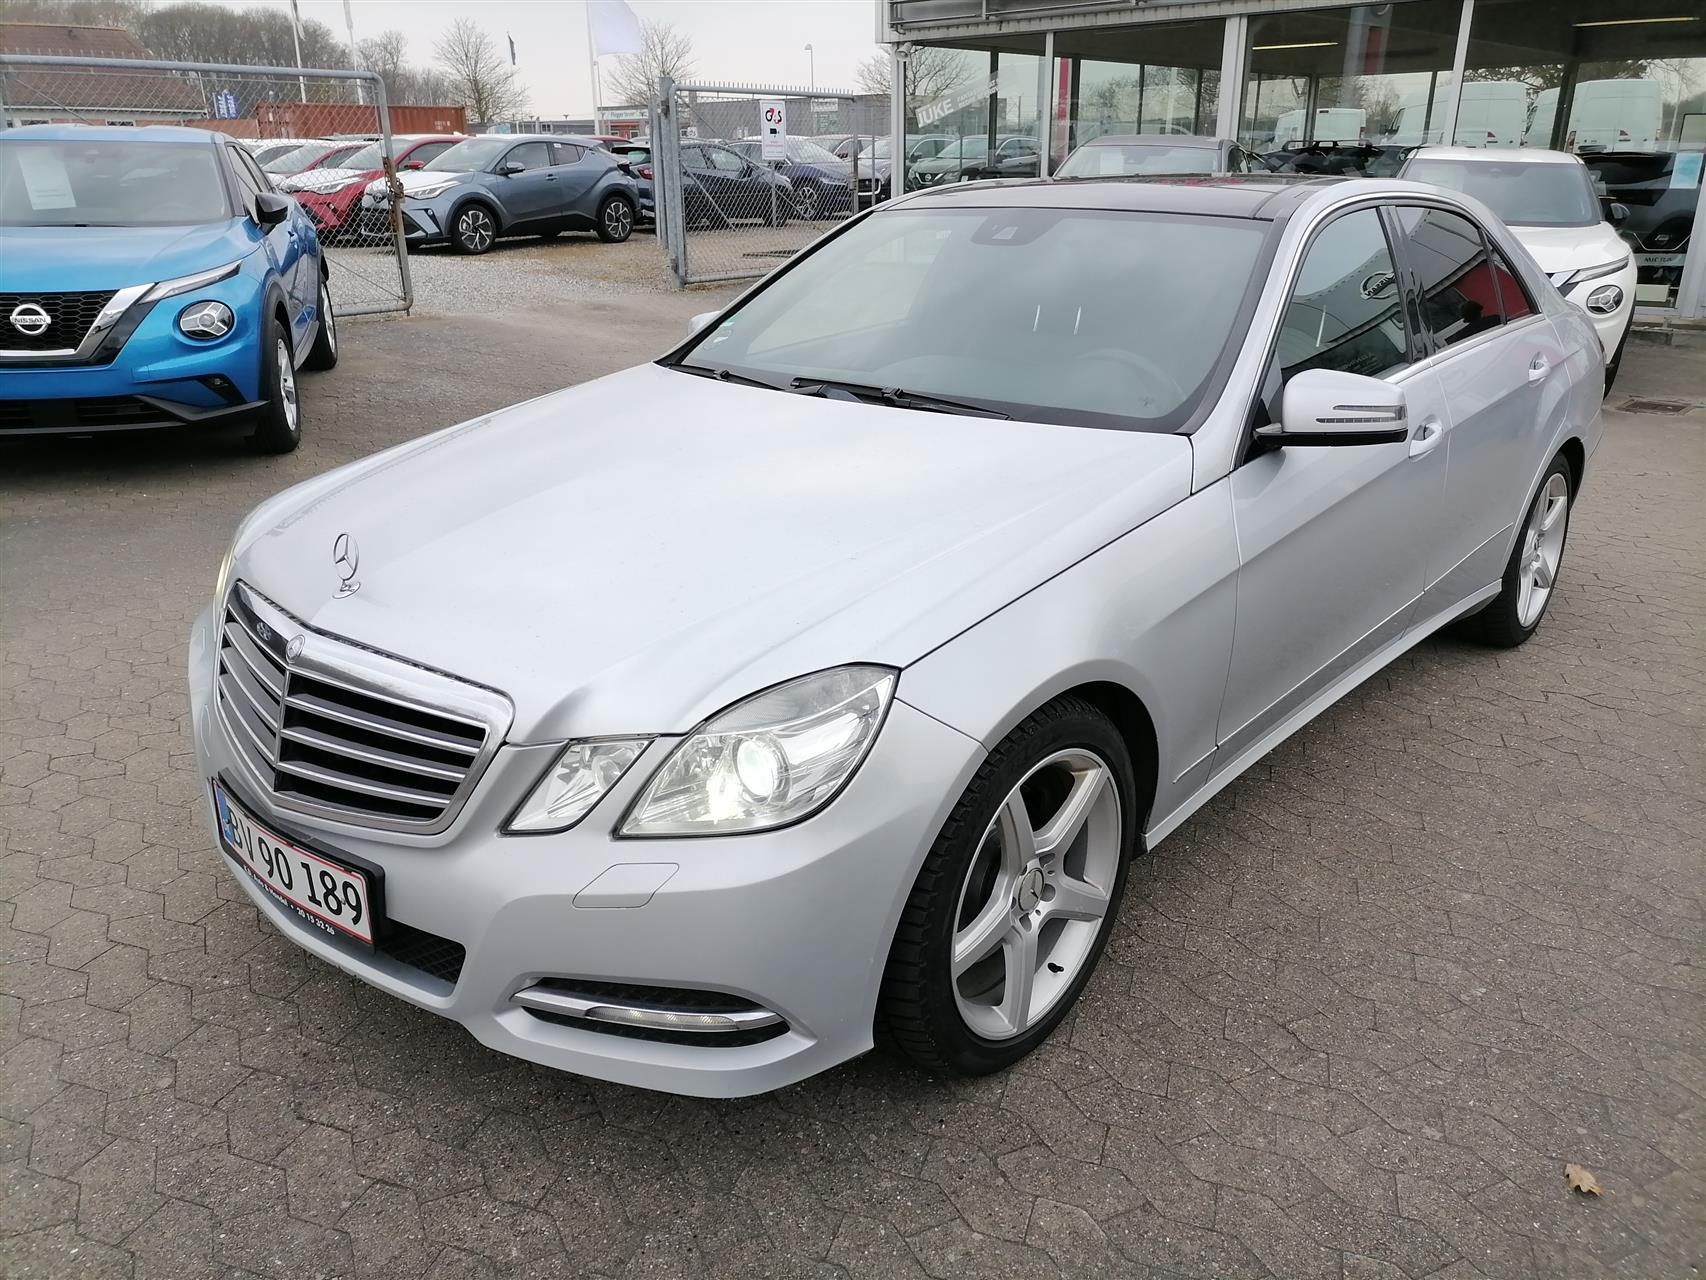 Billede af Mercedes-Benz E350 d 3,0 CDI BlueEfficiency 4-Matic 265HK 7g Aut.